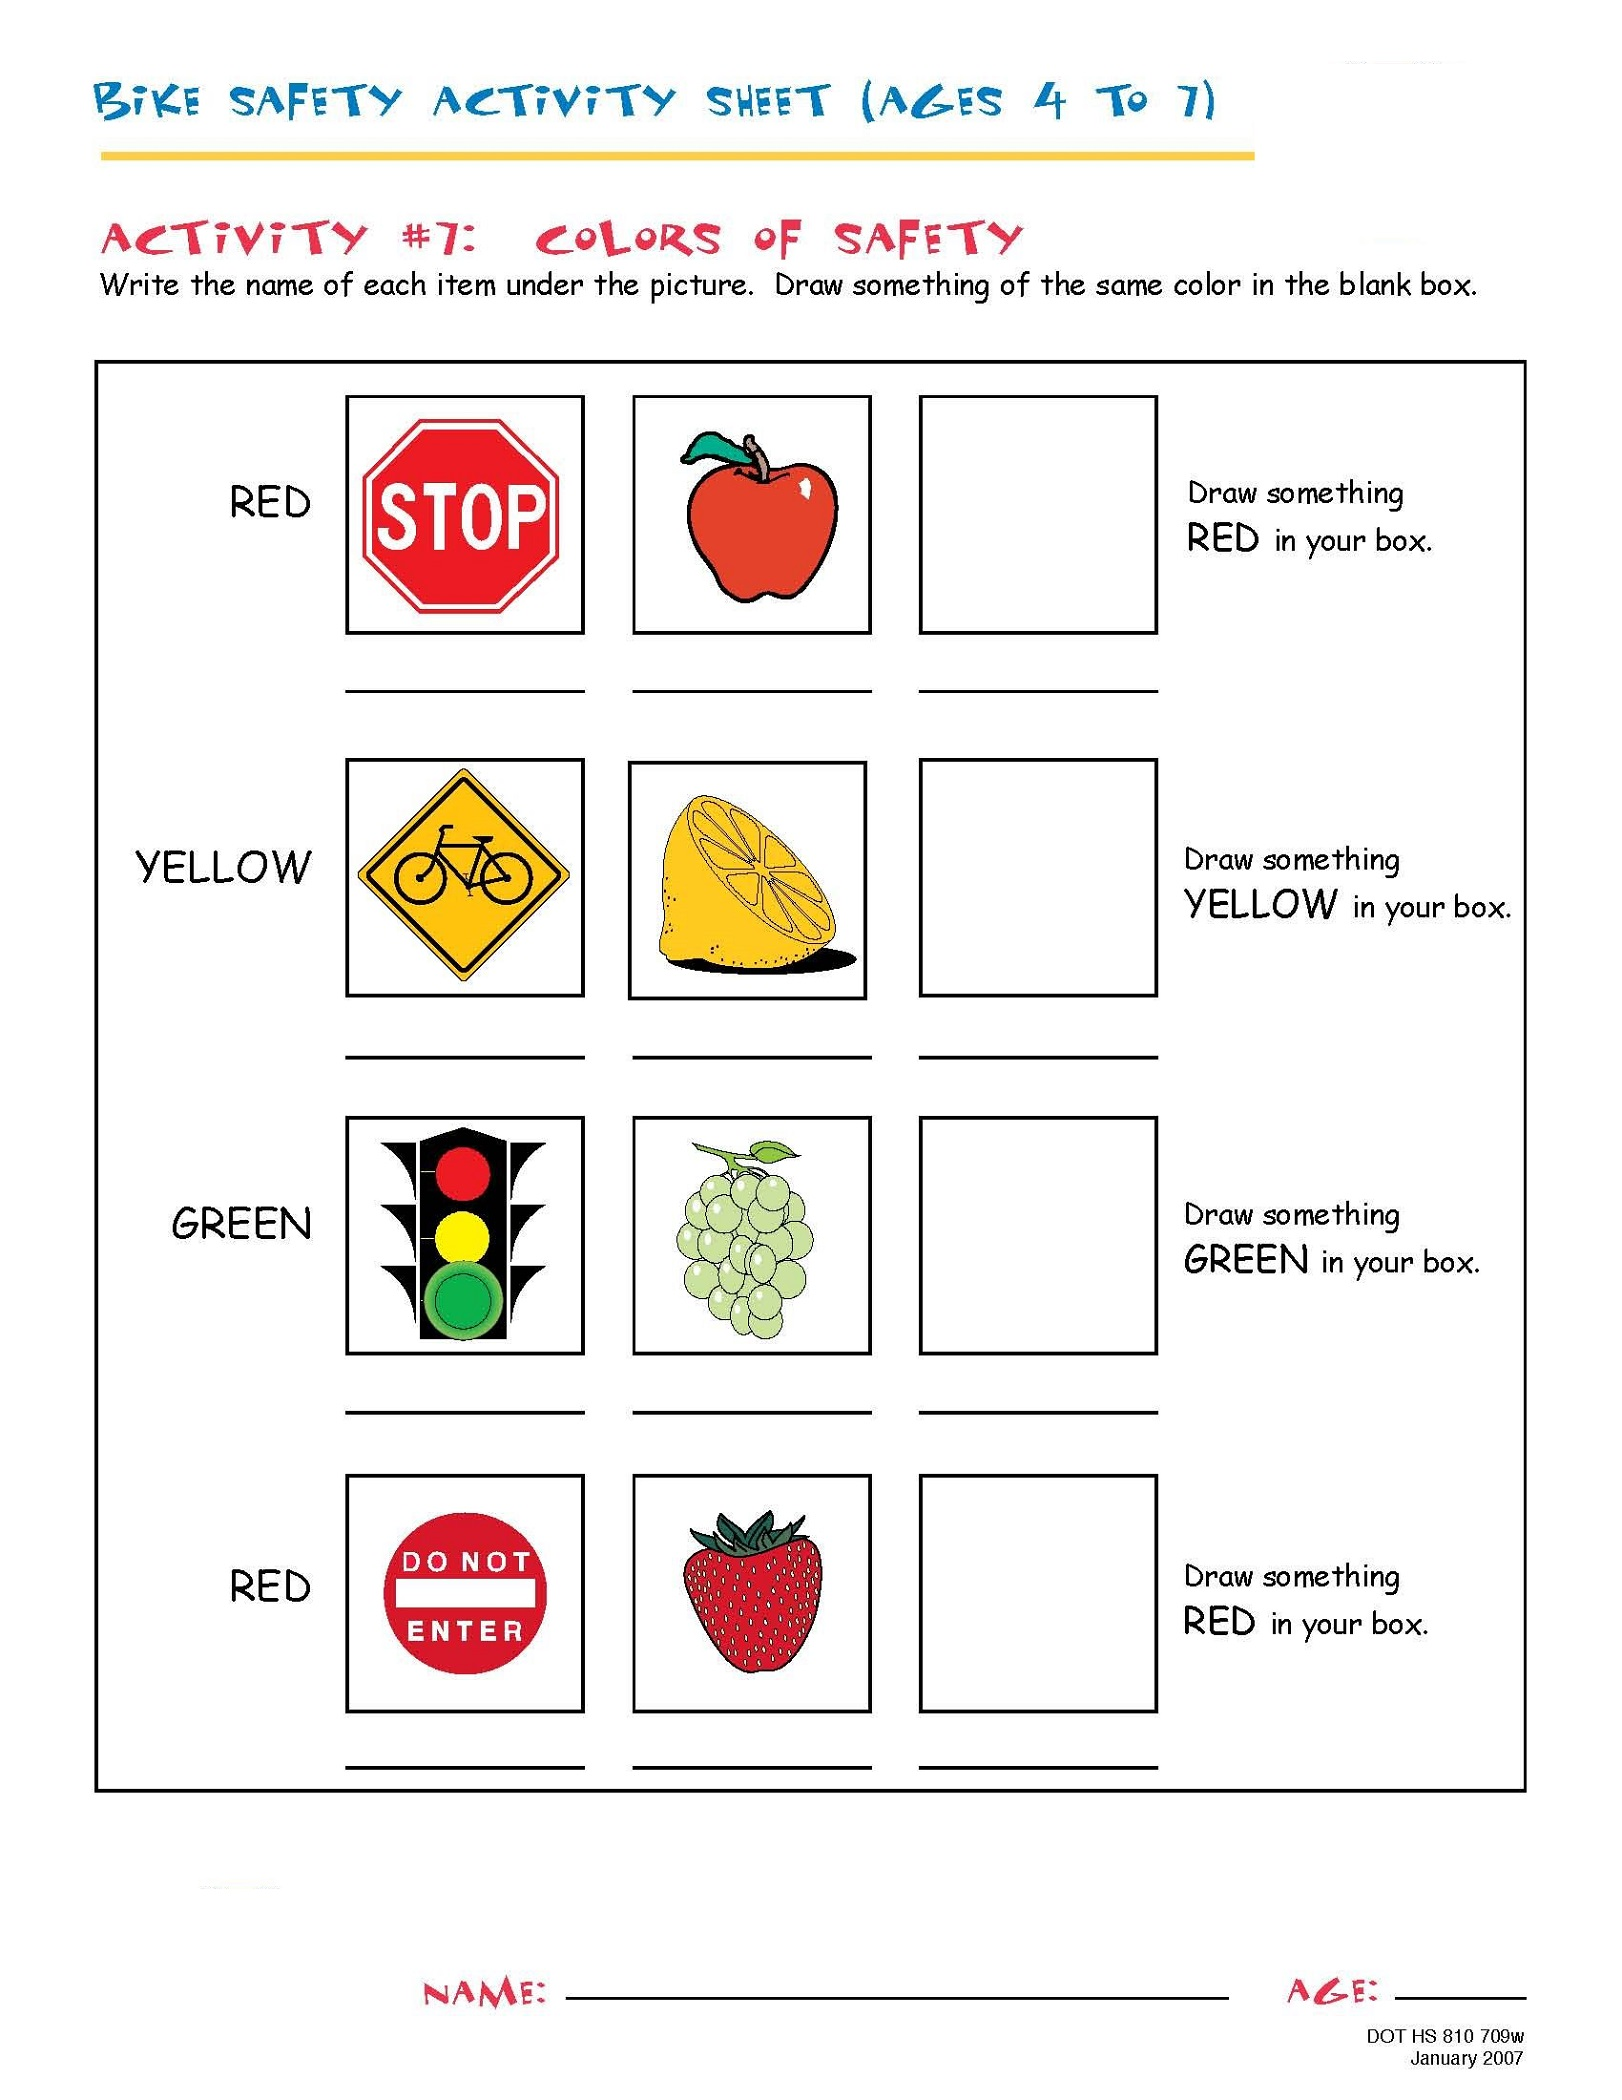 Bike Safety Worksheets For 4 Year Olds